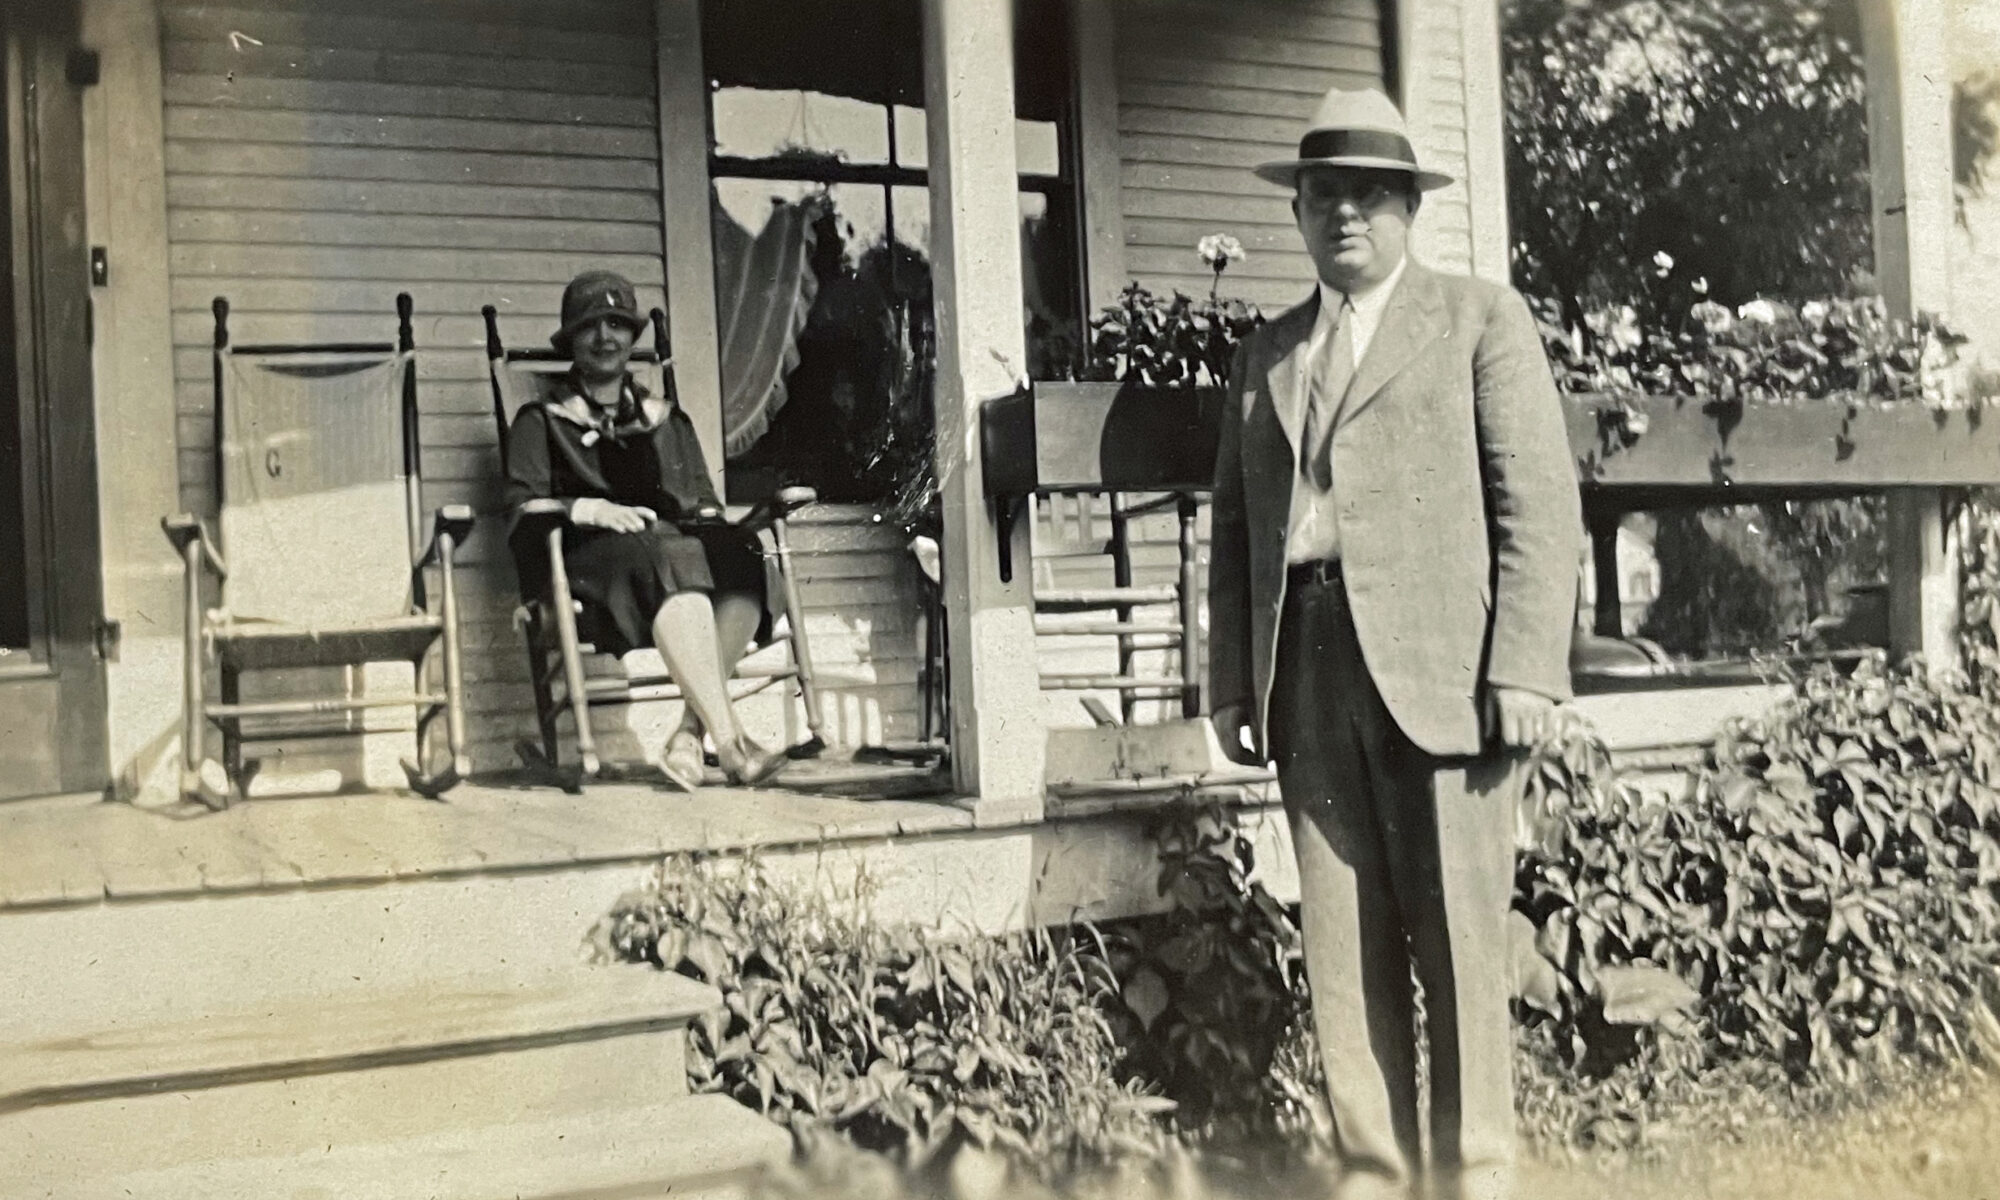 Harold and Evelyn late 1920's